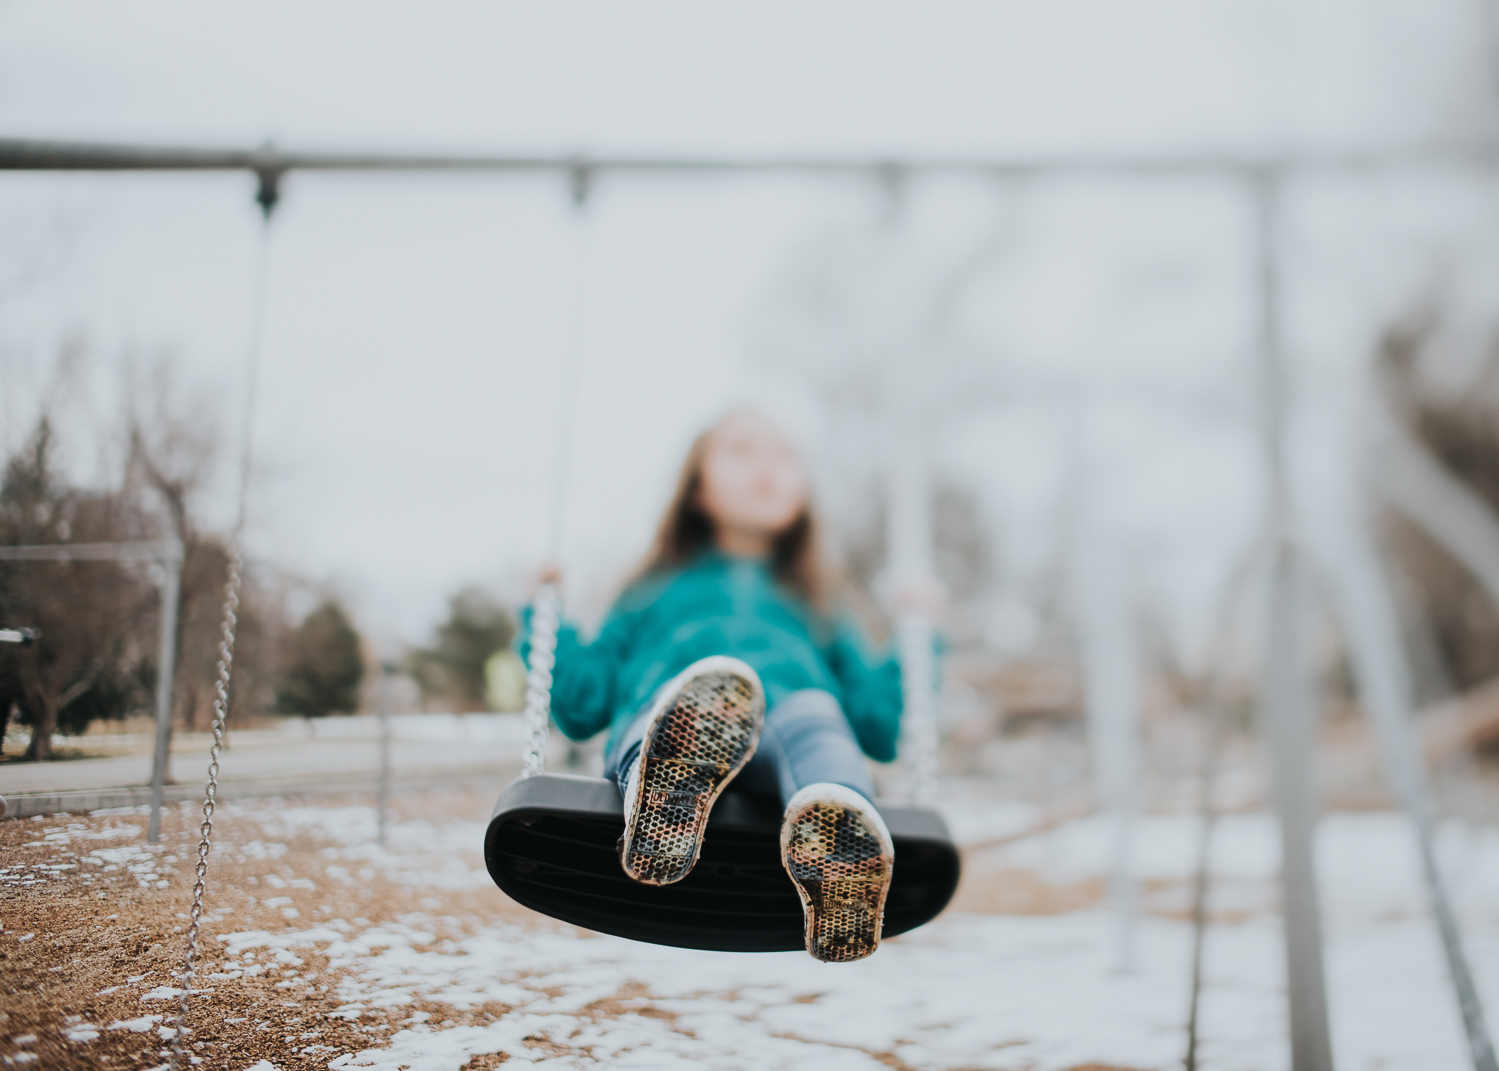 A freelensed image of my daughter, taken in March, during a cold playdate.